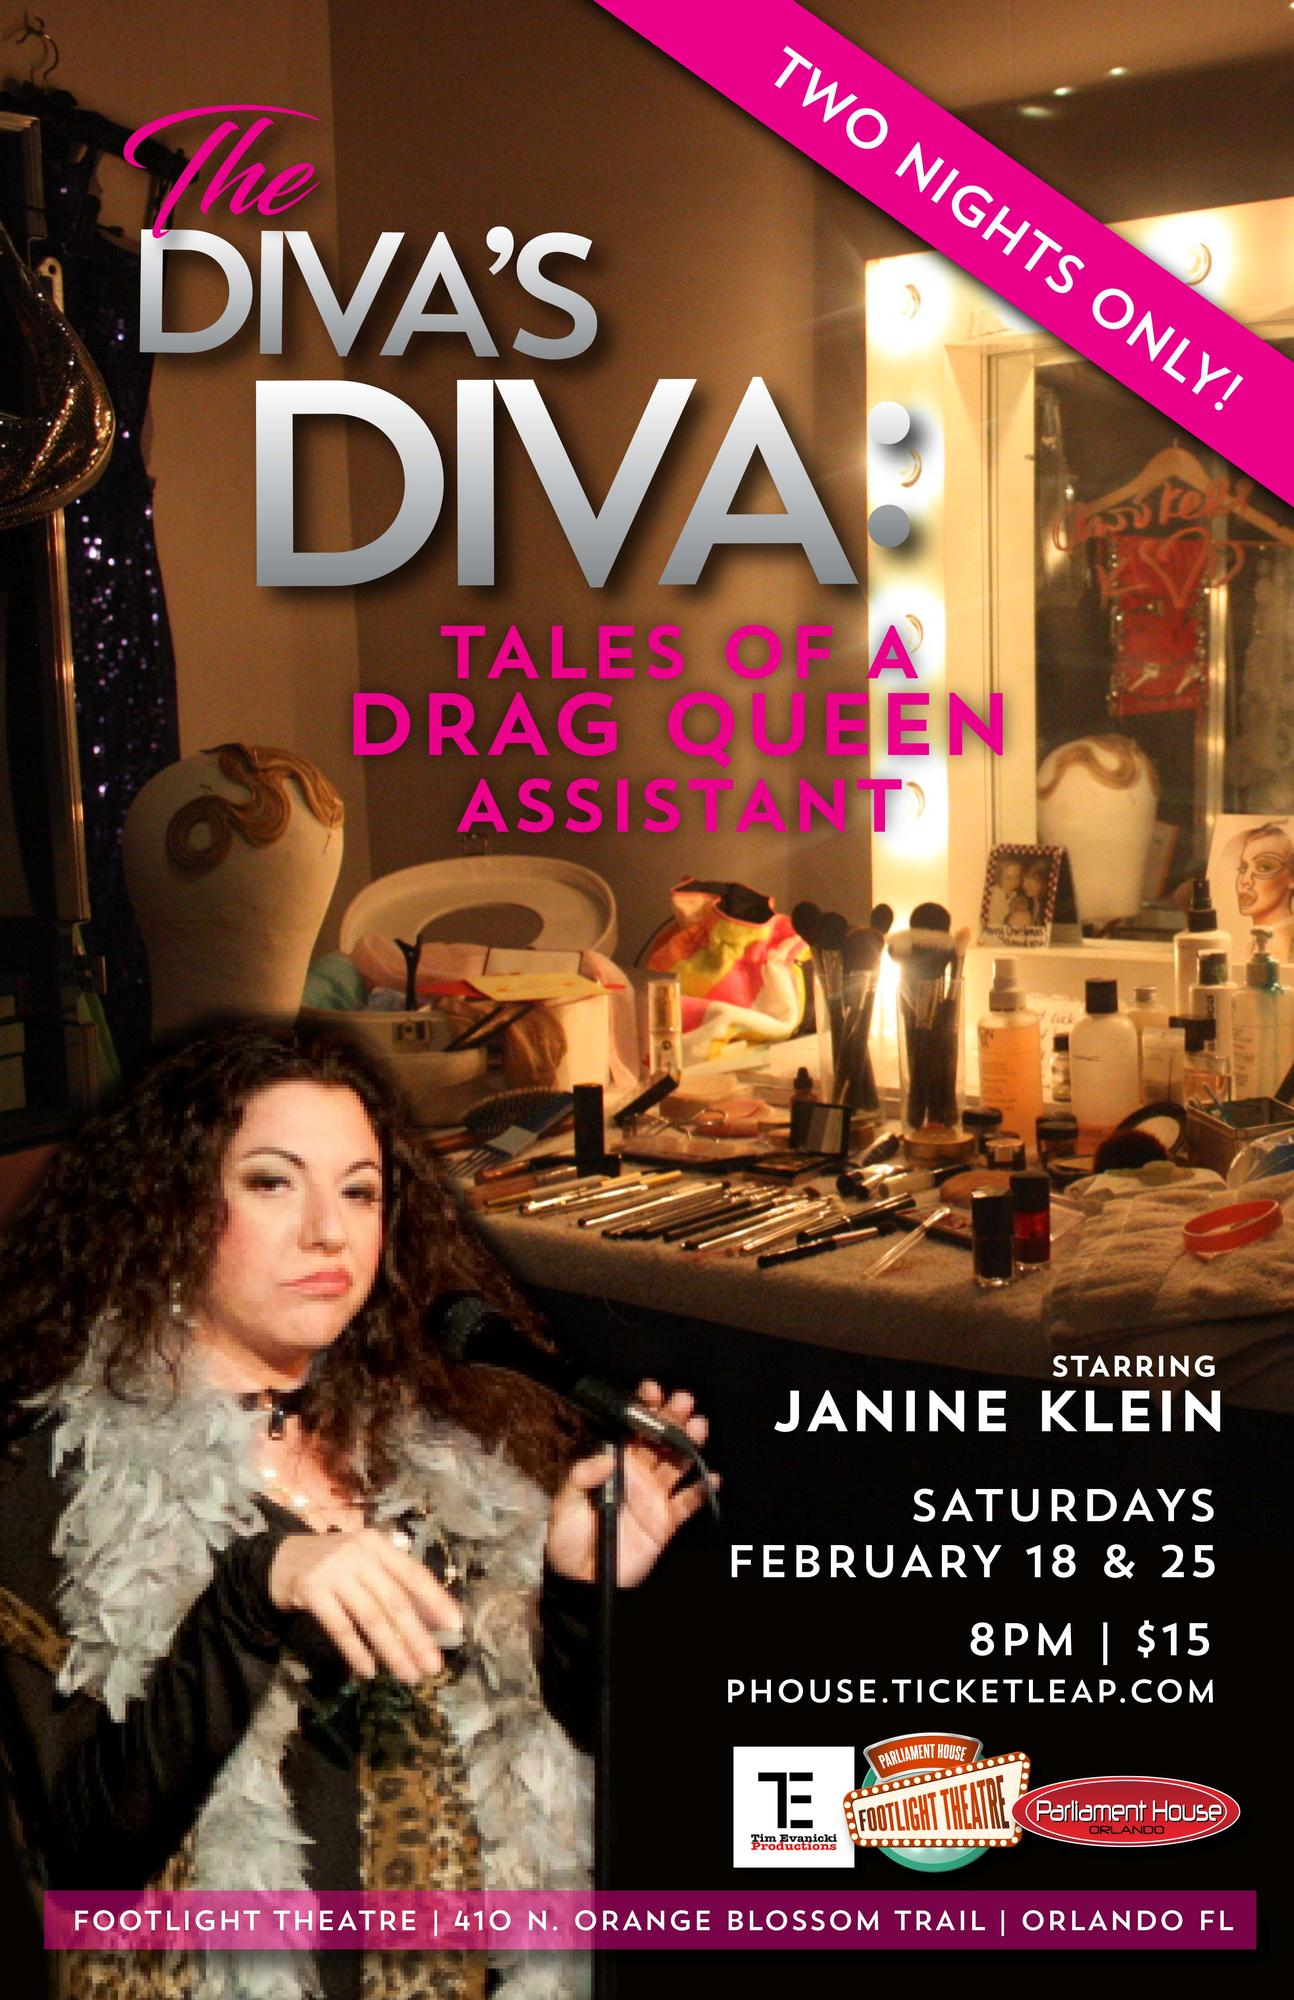 Janine Klein is The Divas Diva Tales of a Drag Queen Assistant